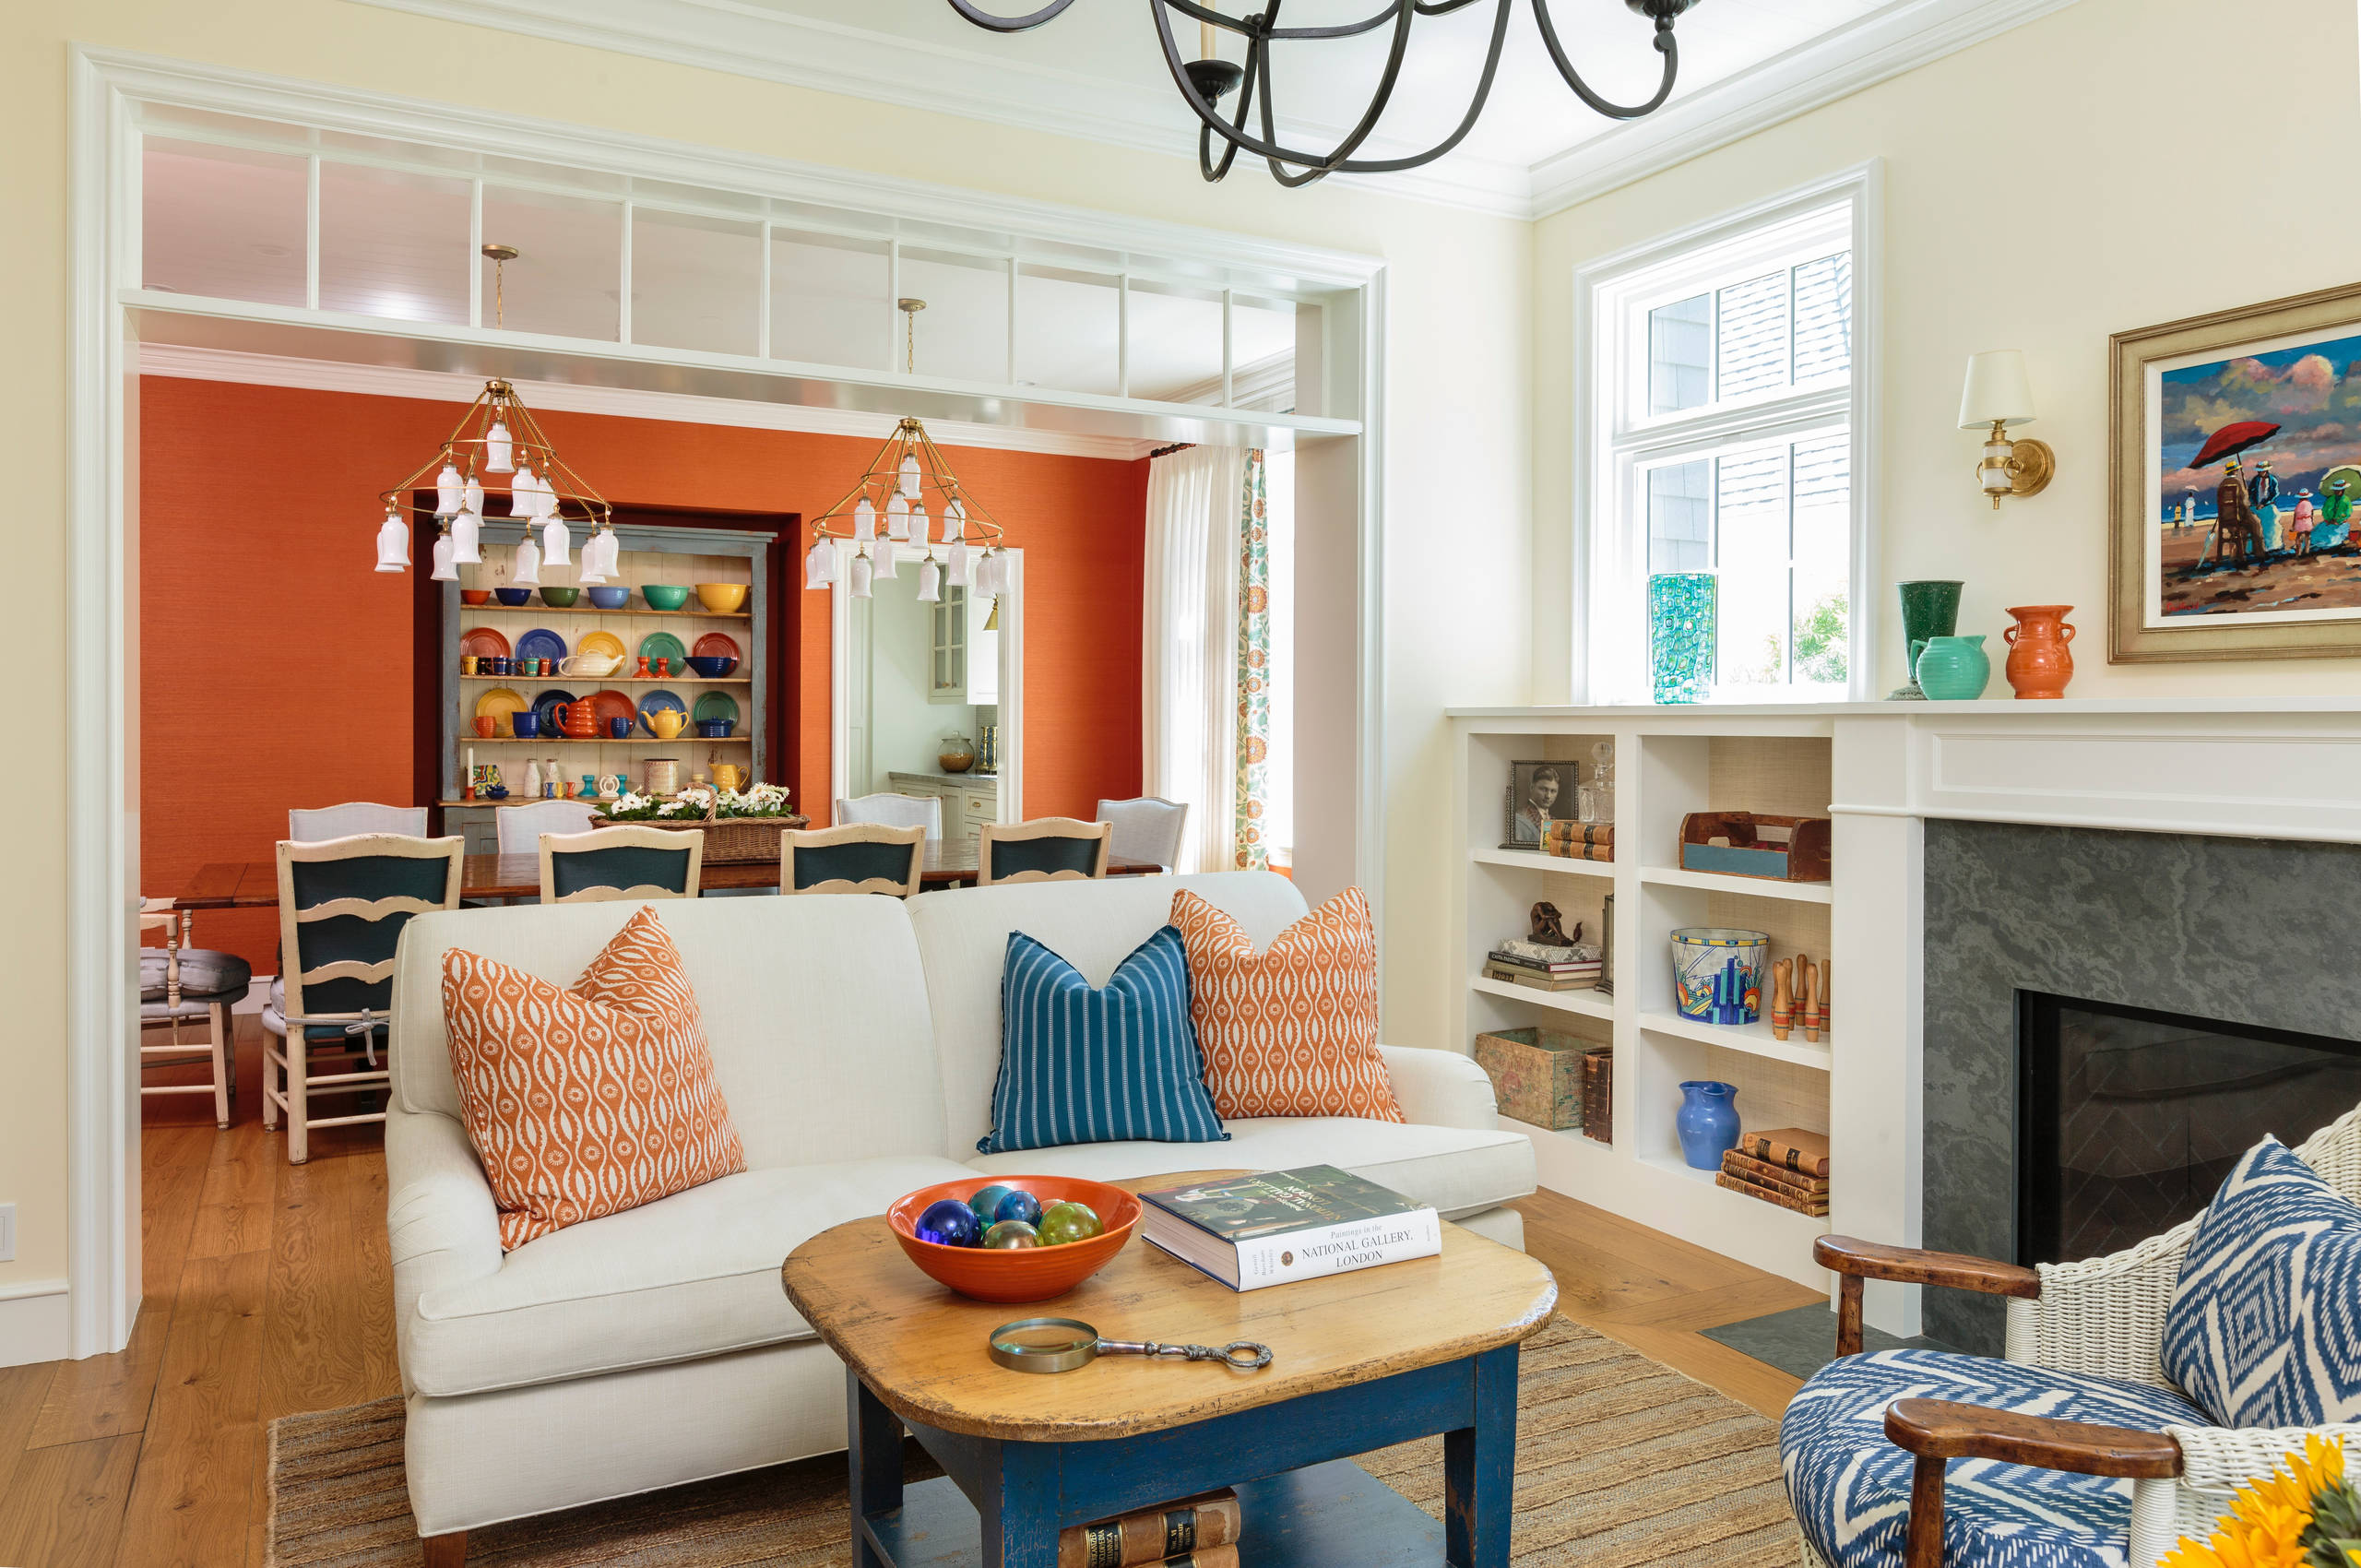 75 Beautiful Living Room With Orange Walls Pictures Ideas January 2021 Houzz